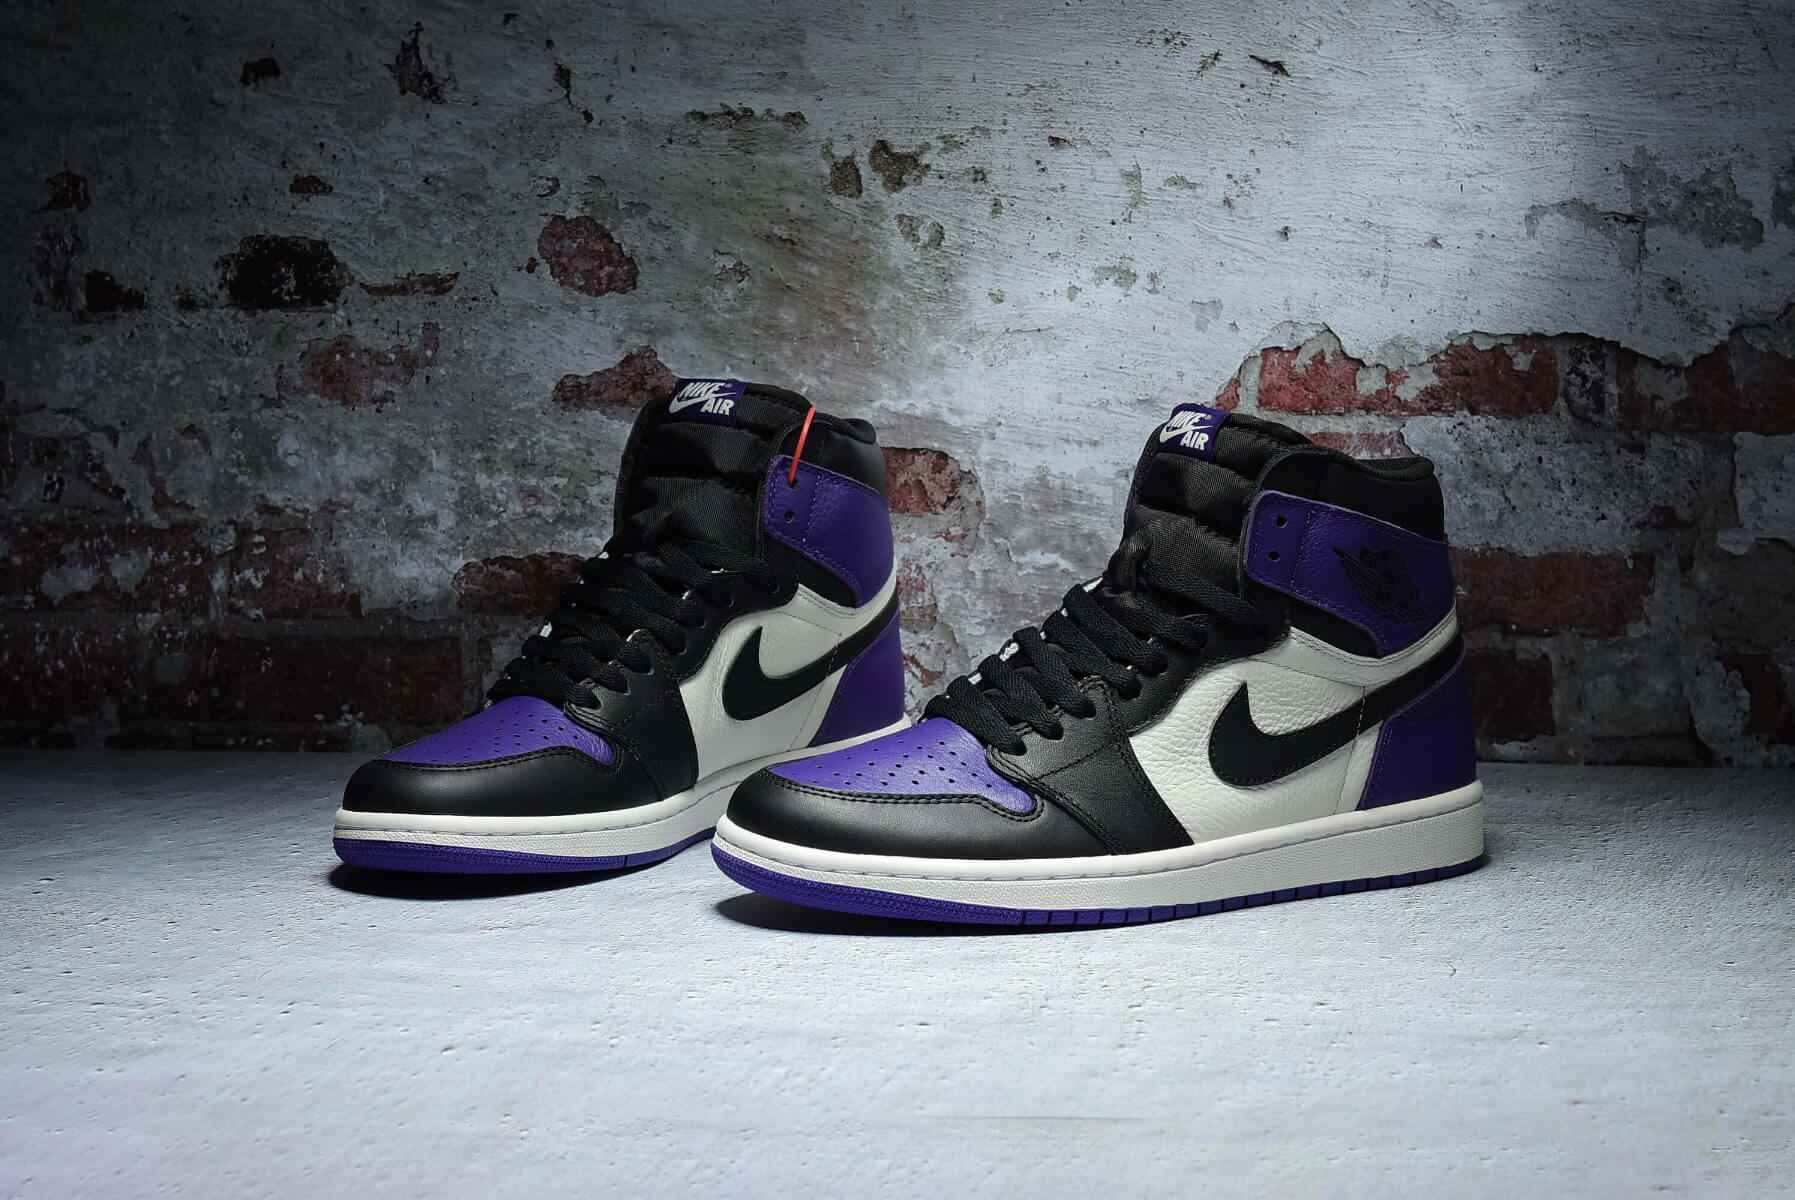 "Air Jordan 1 OG Hi Retro""Court Purple"" 555088-501"